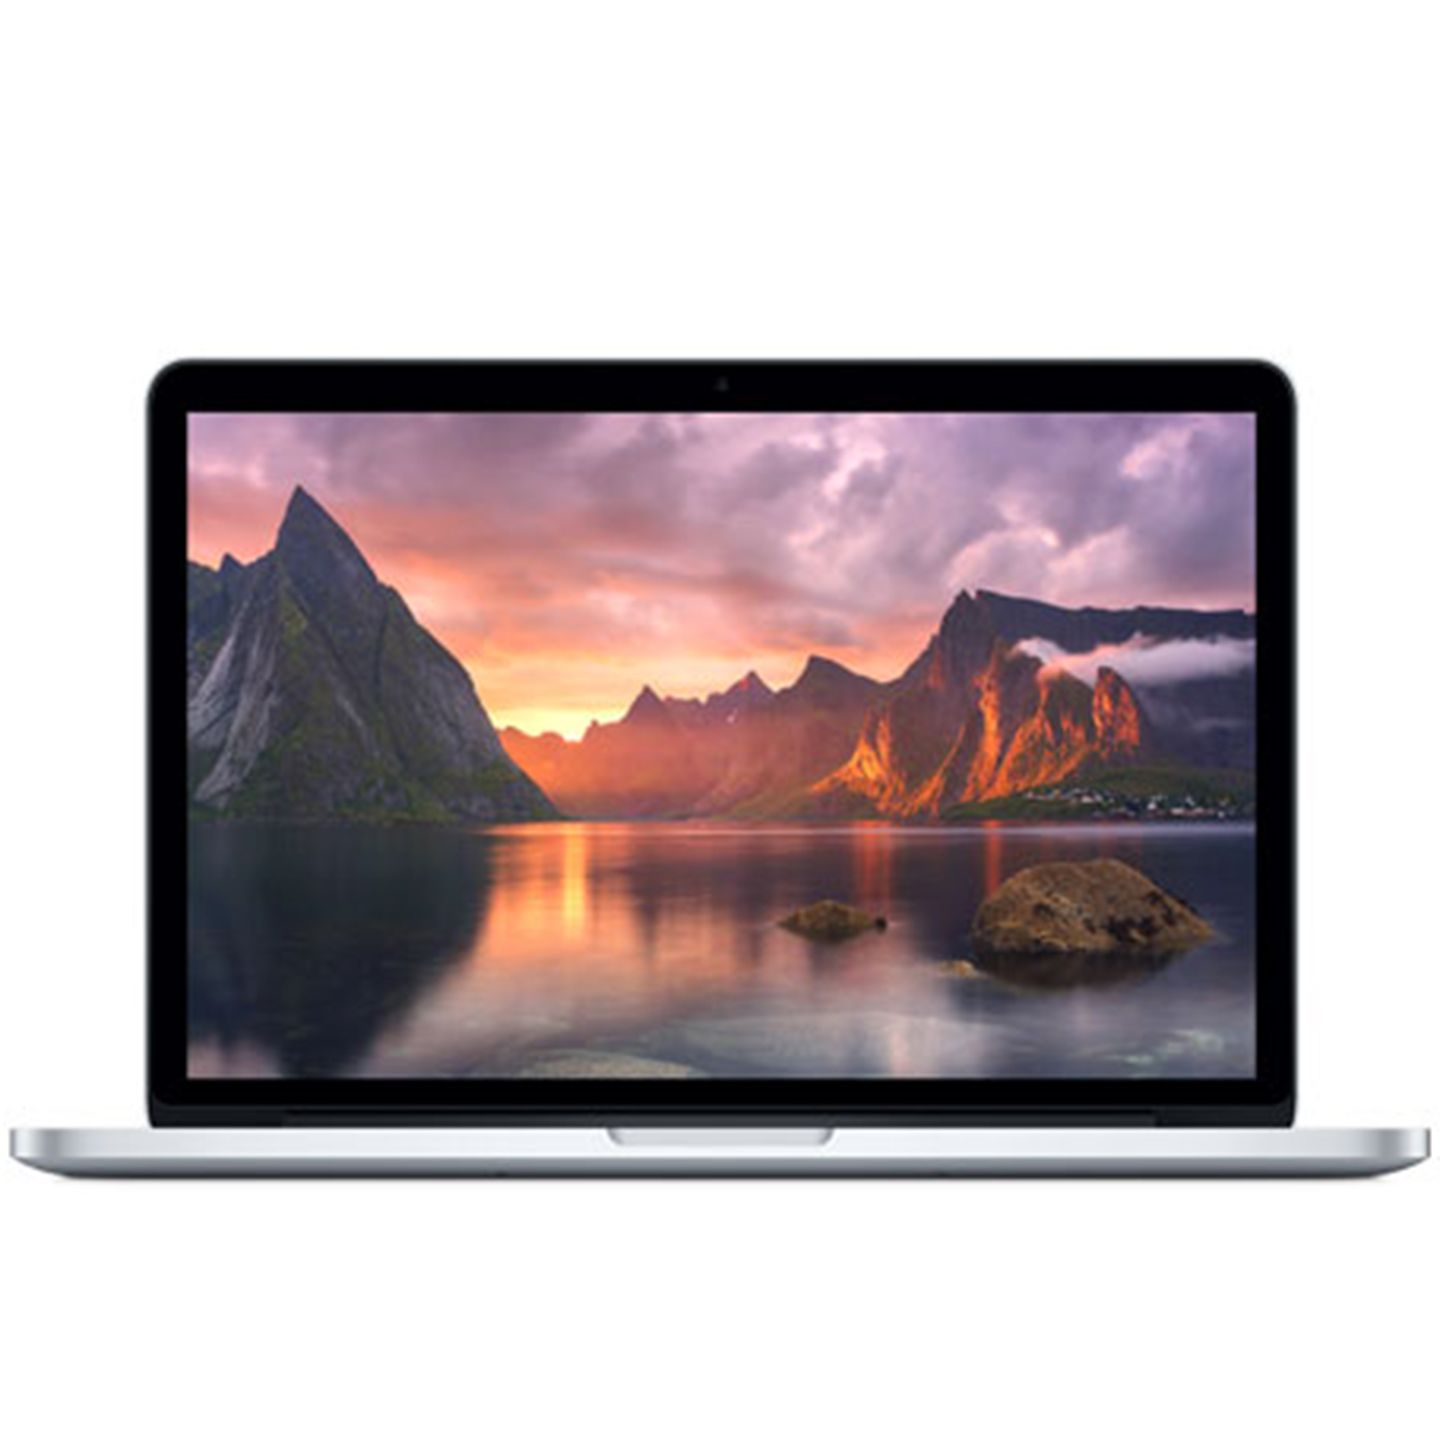 MacBook Pro - Main